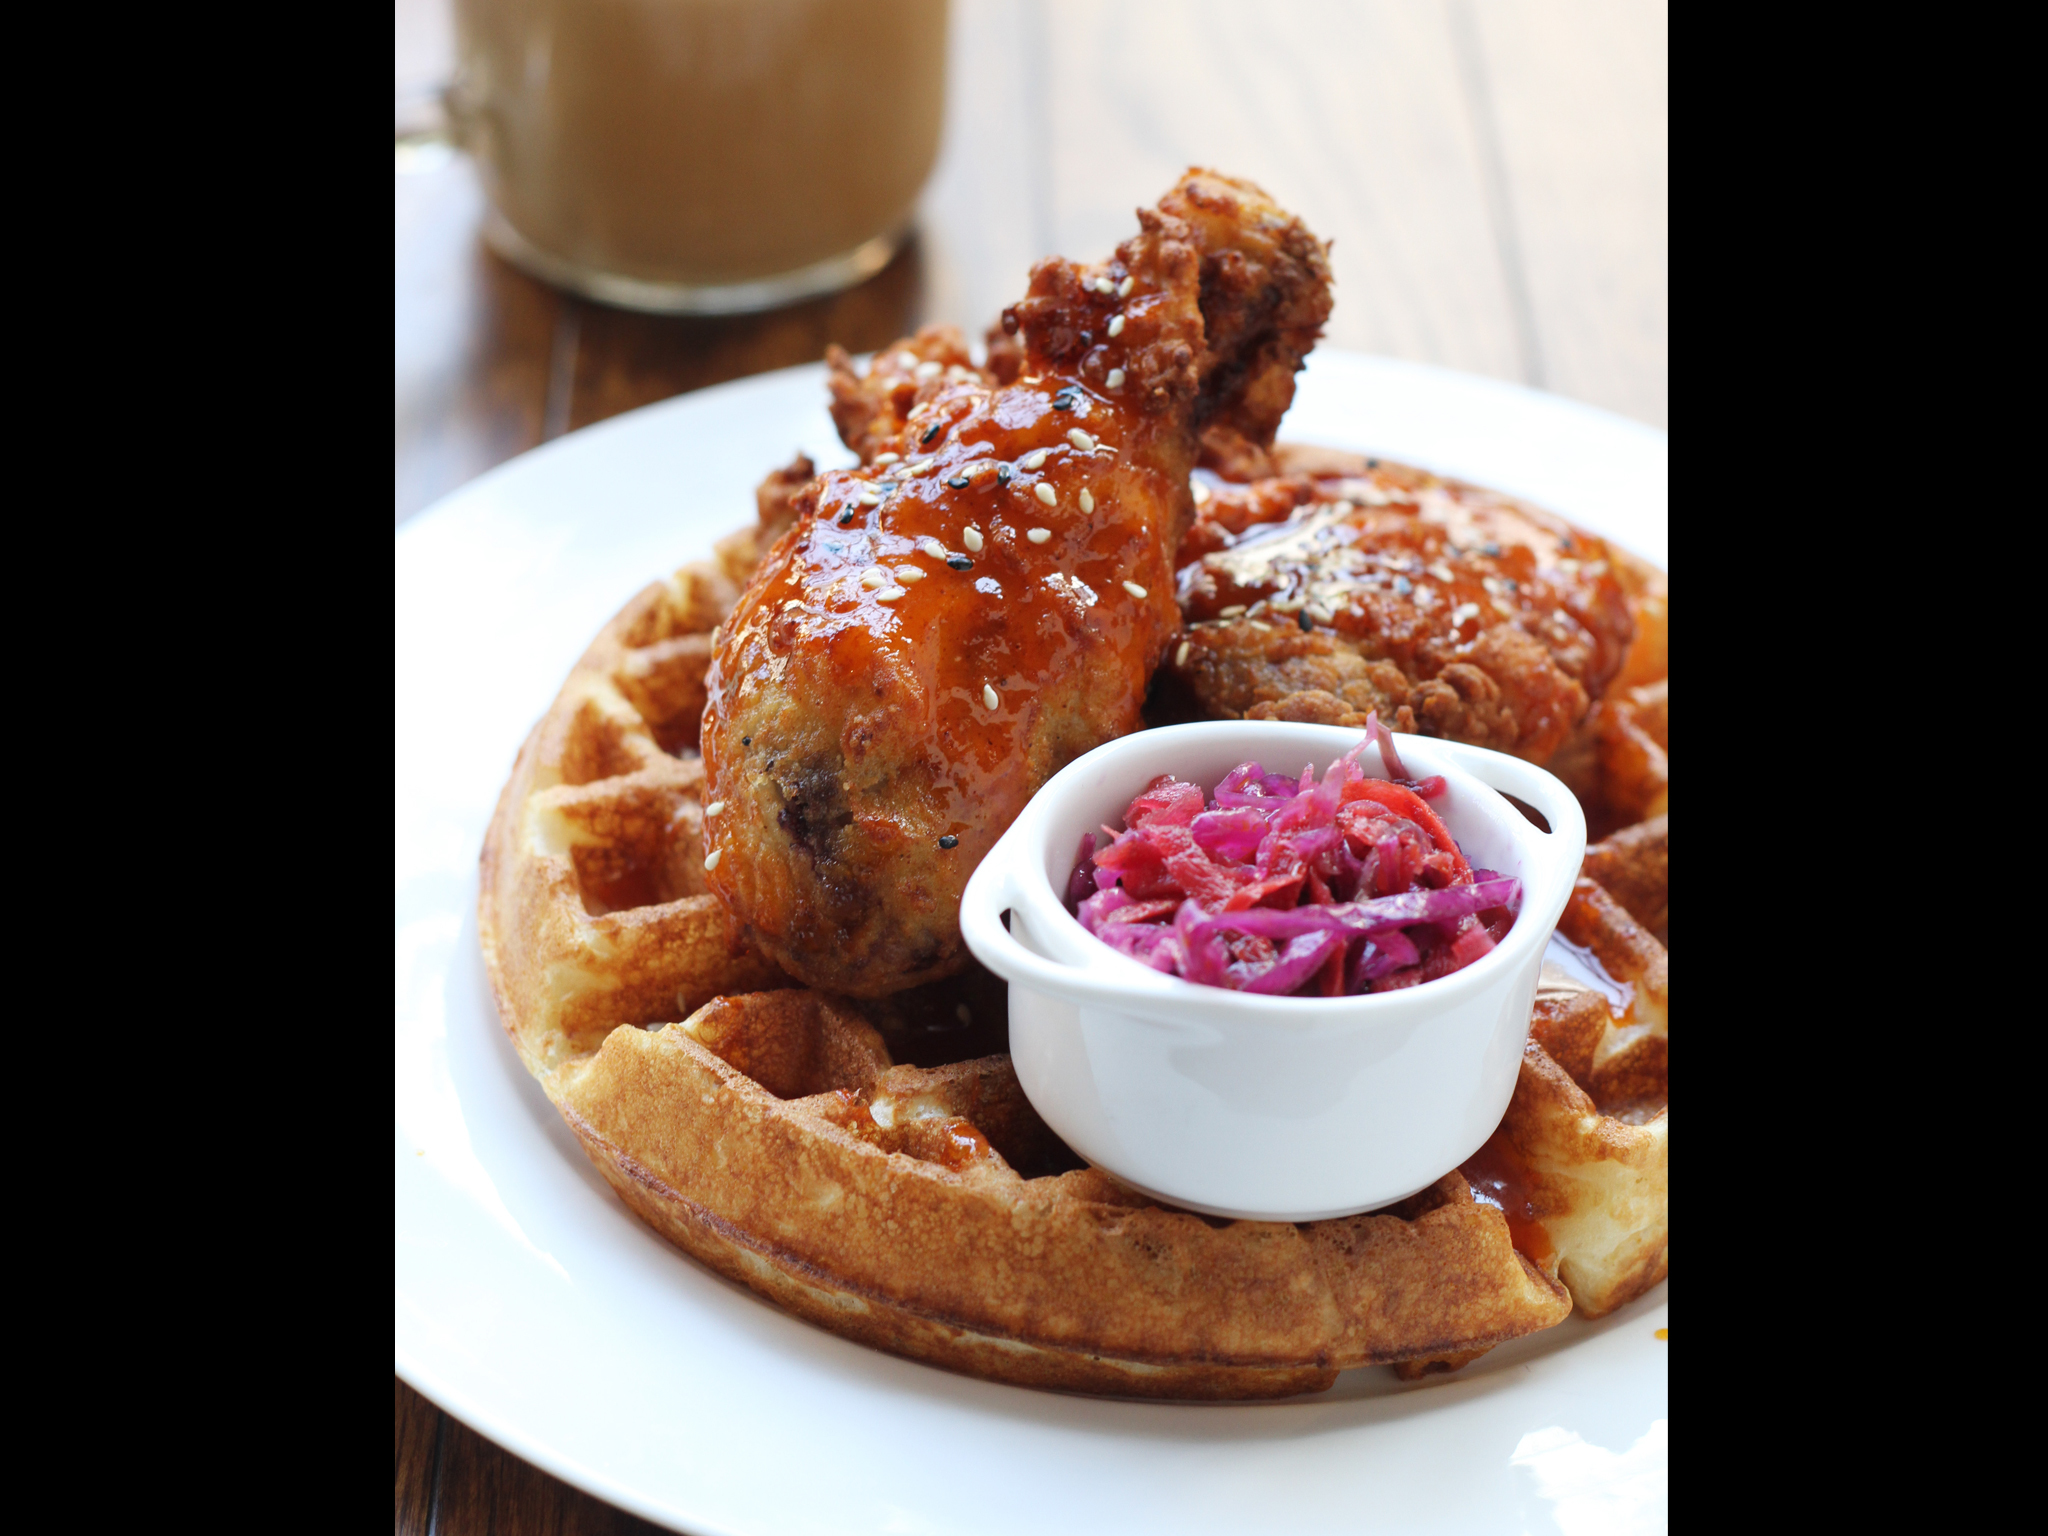 Chicken&waffle with cider slaw at Chu